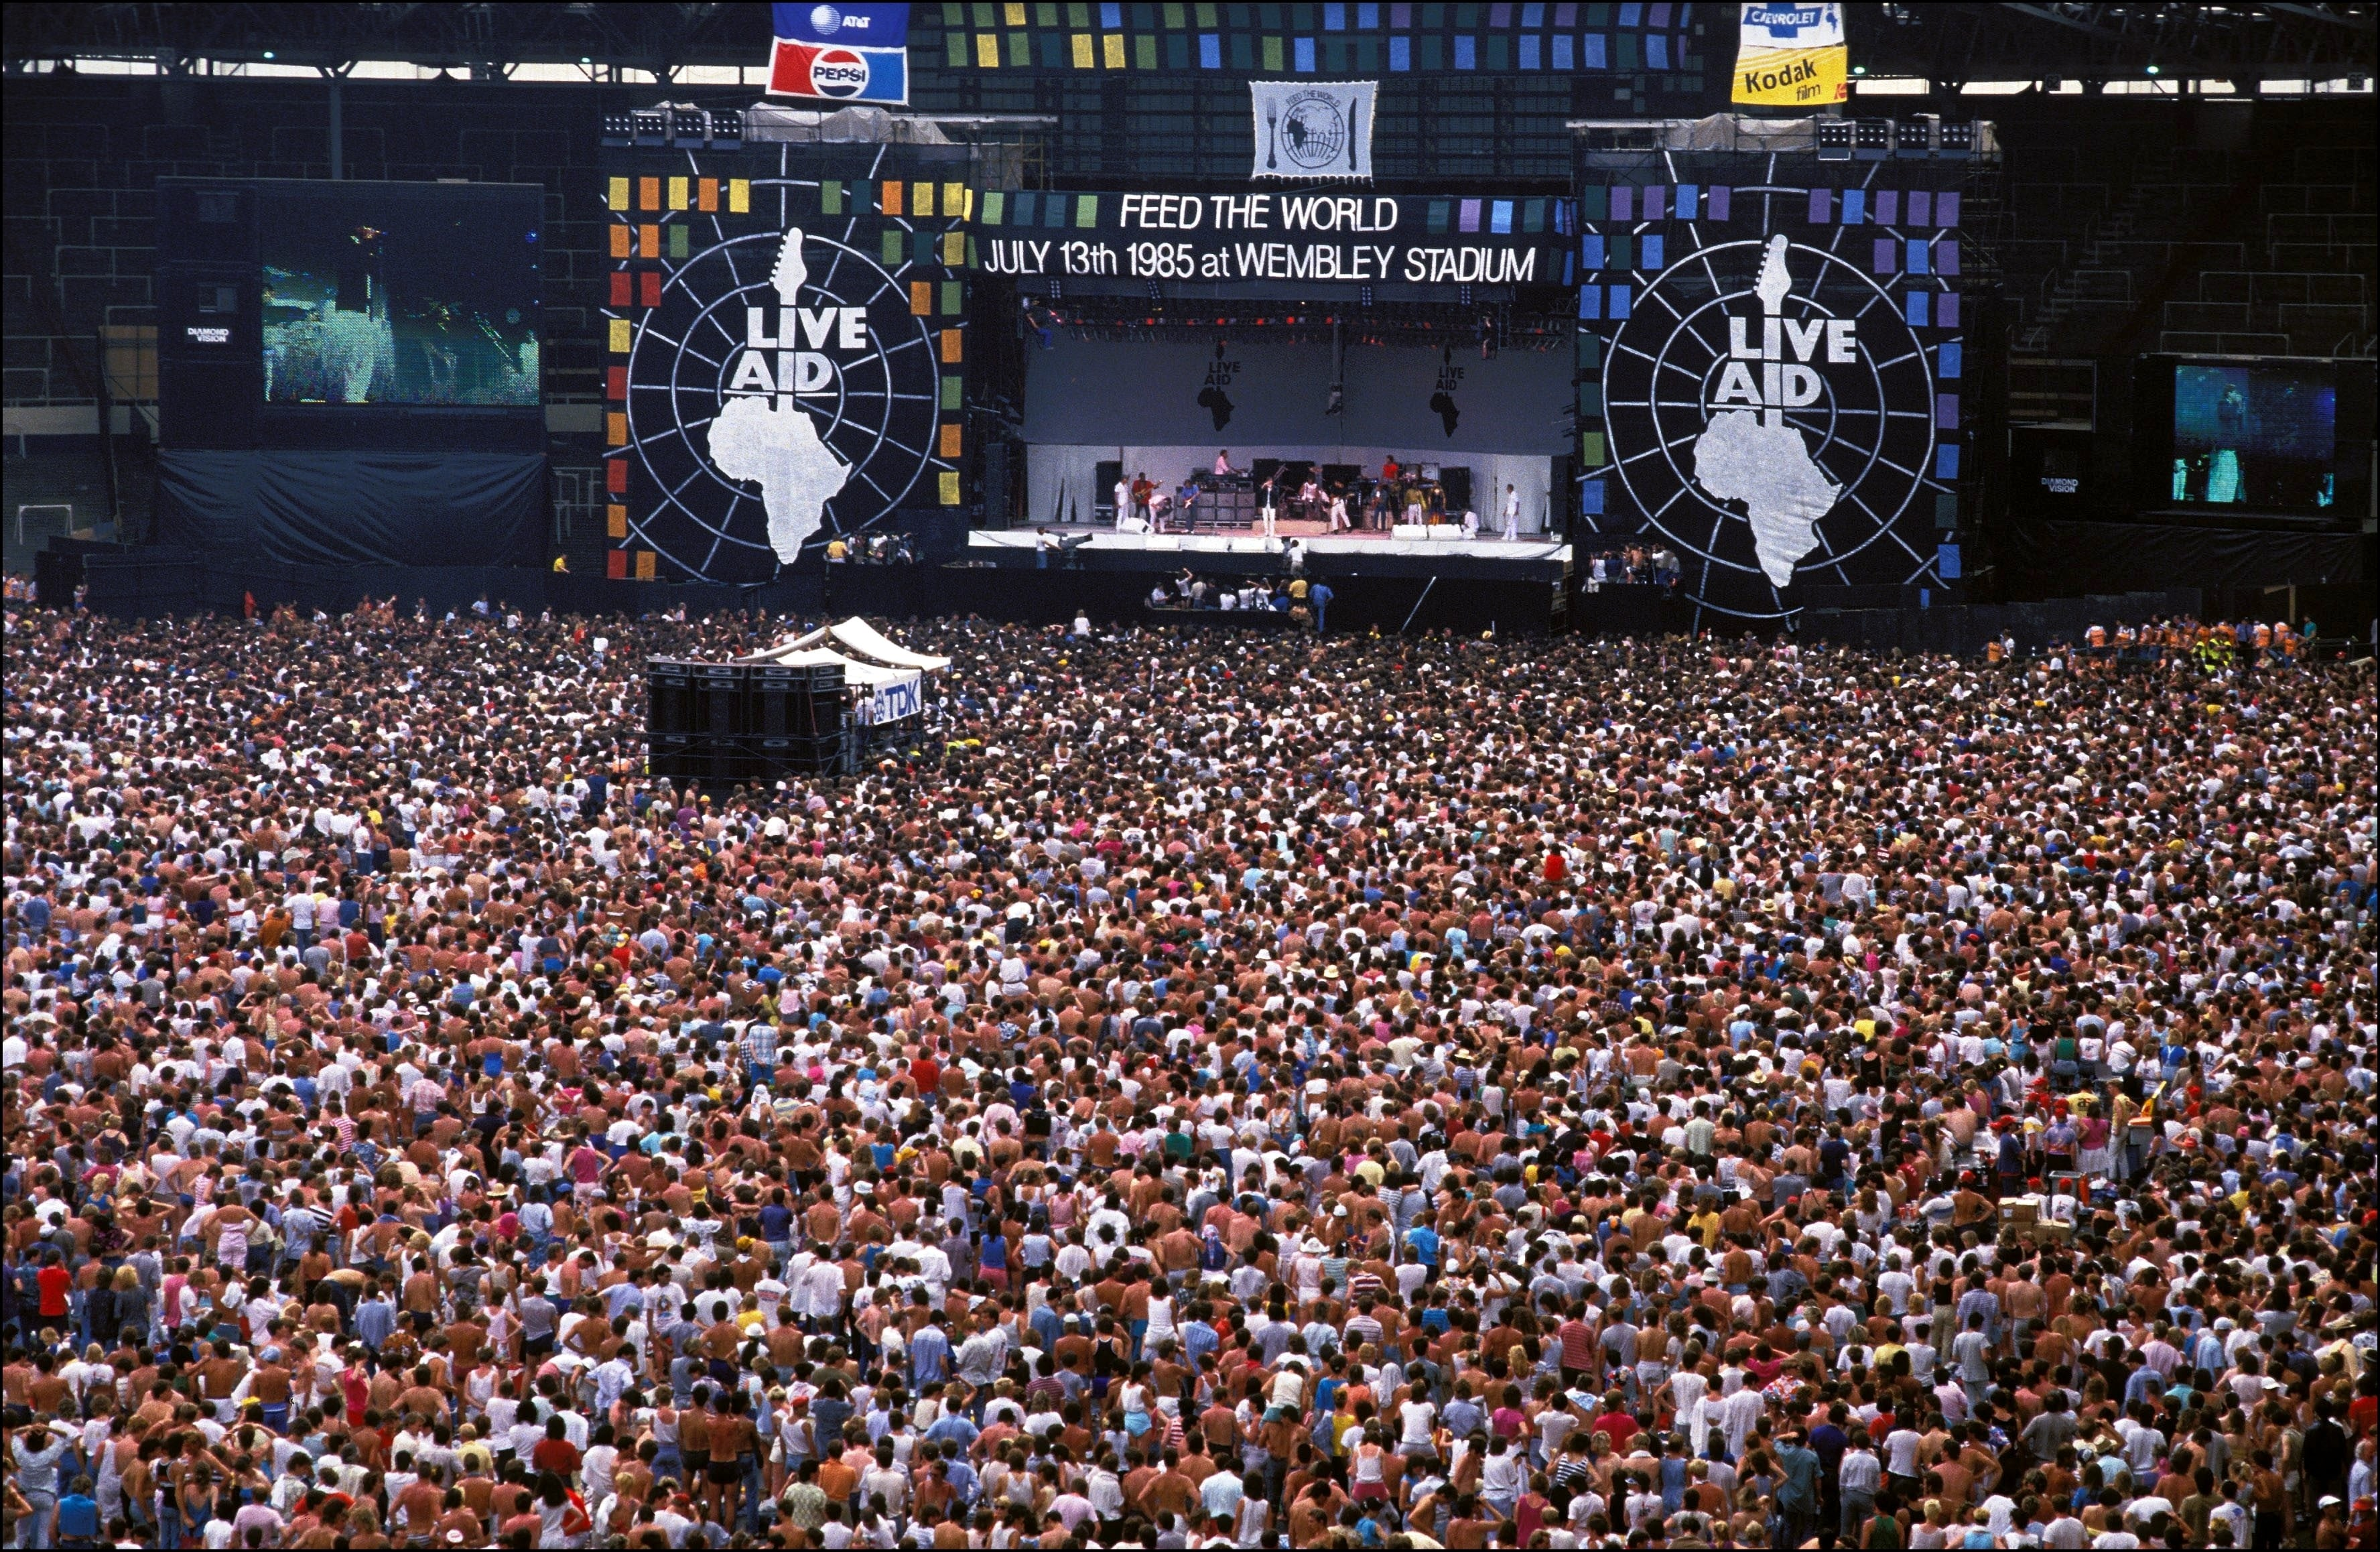 1548858720157_GettyImages-51379999.jpg - Londra, 13 luglio 1985. I Queen infiammano la folla al Live Aid for Africa allo stadio di Wembley